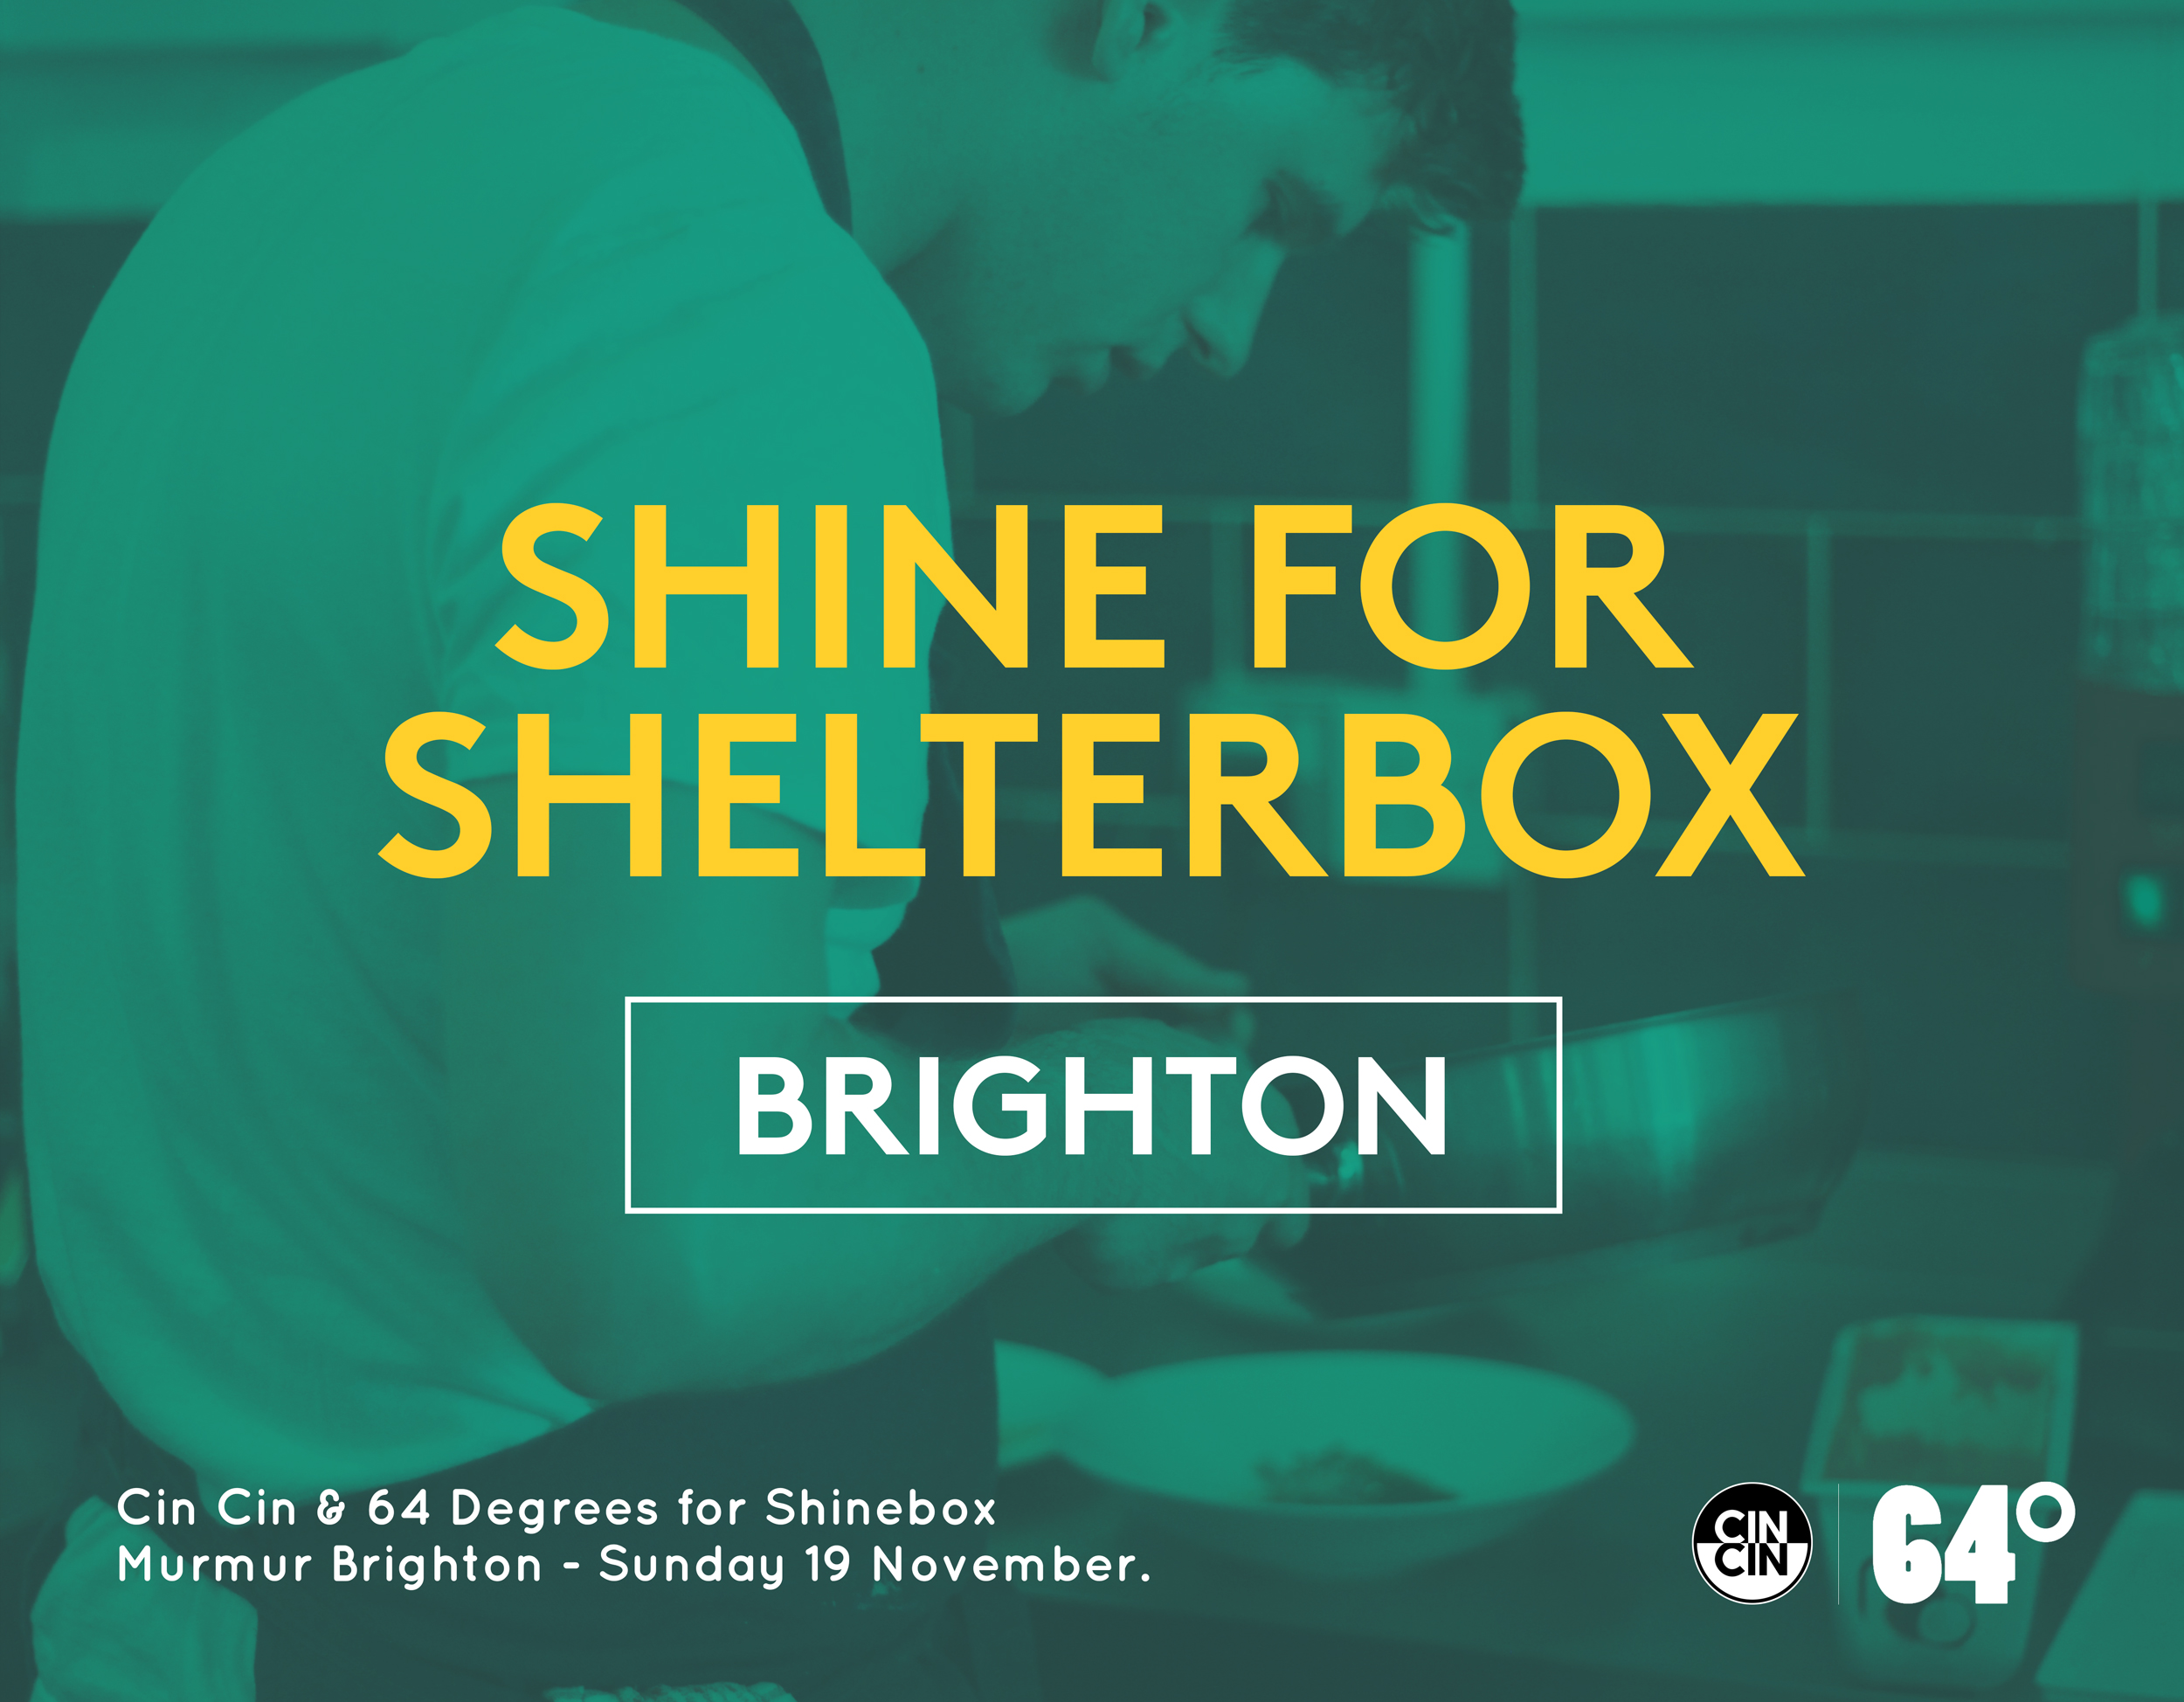 Cin Cin Brighton, Shine for Shelterbox